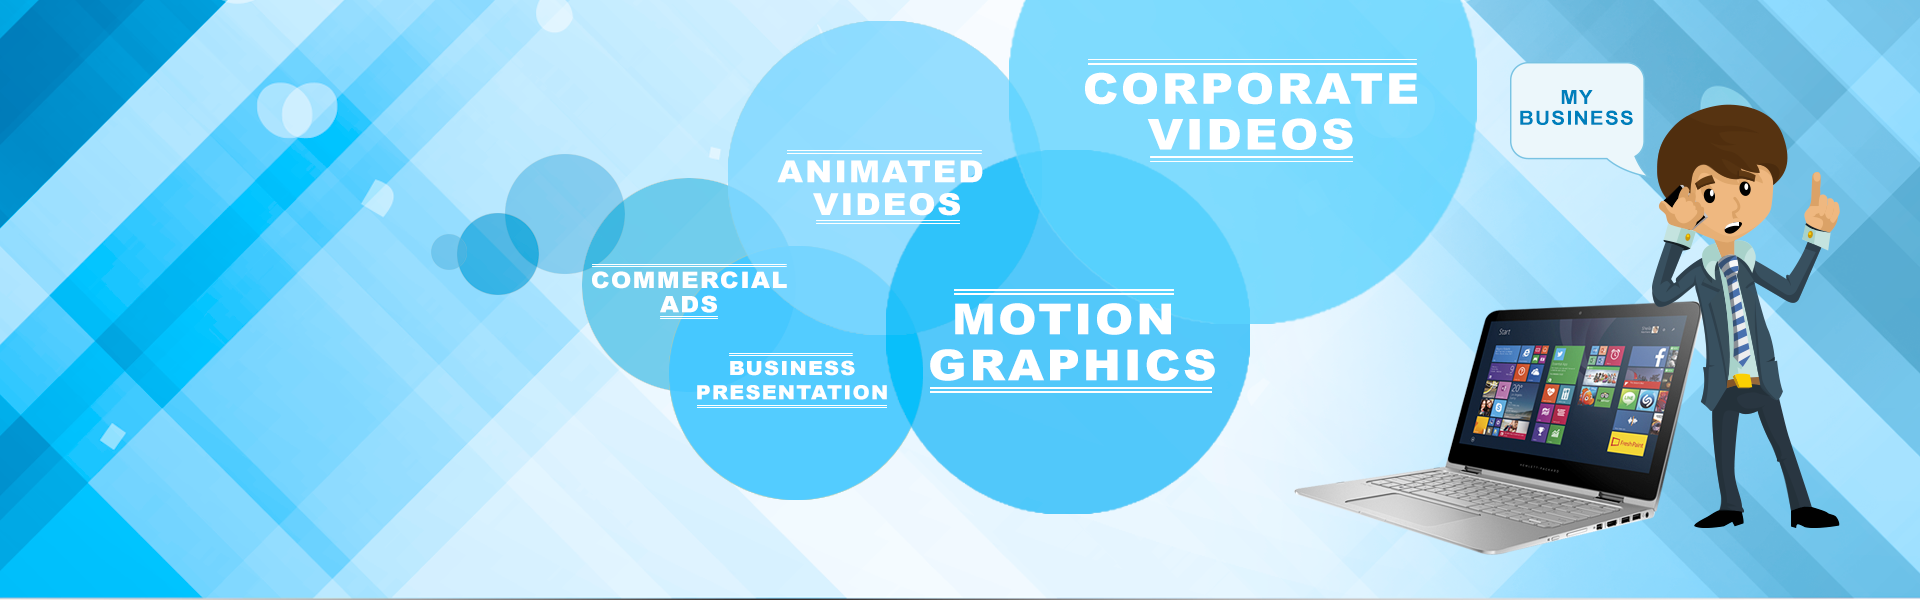 Corporate Films Mumbai is the destination for all those who desire to make creative corporate and ad films in Mumbai. Corporate films reflect the company